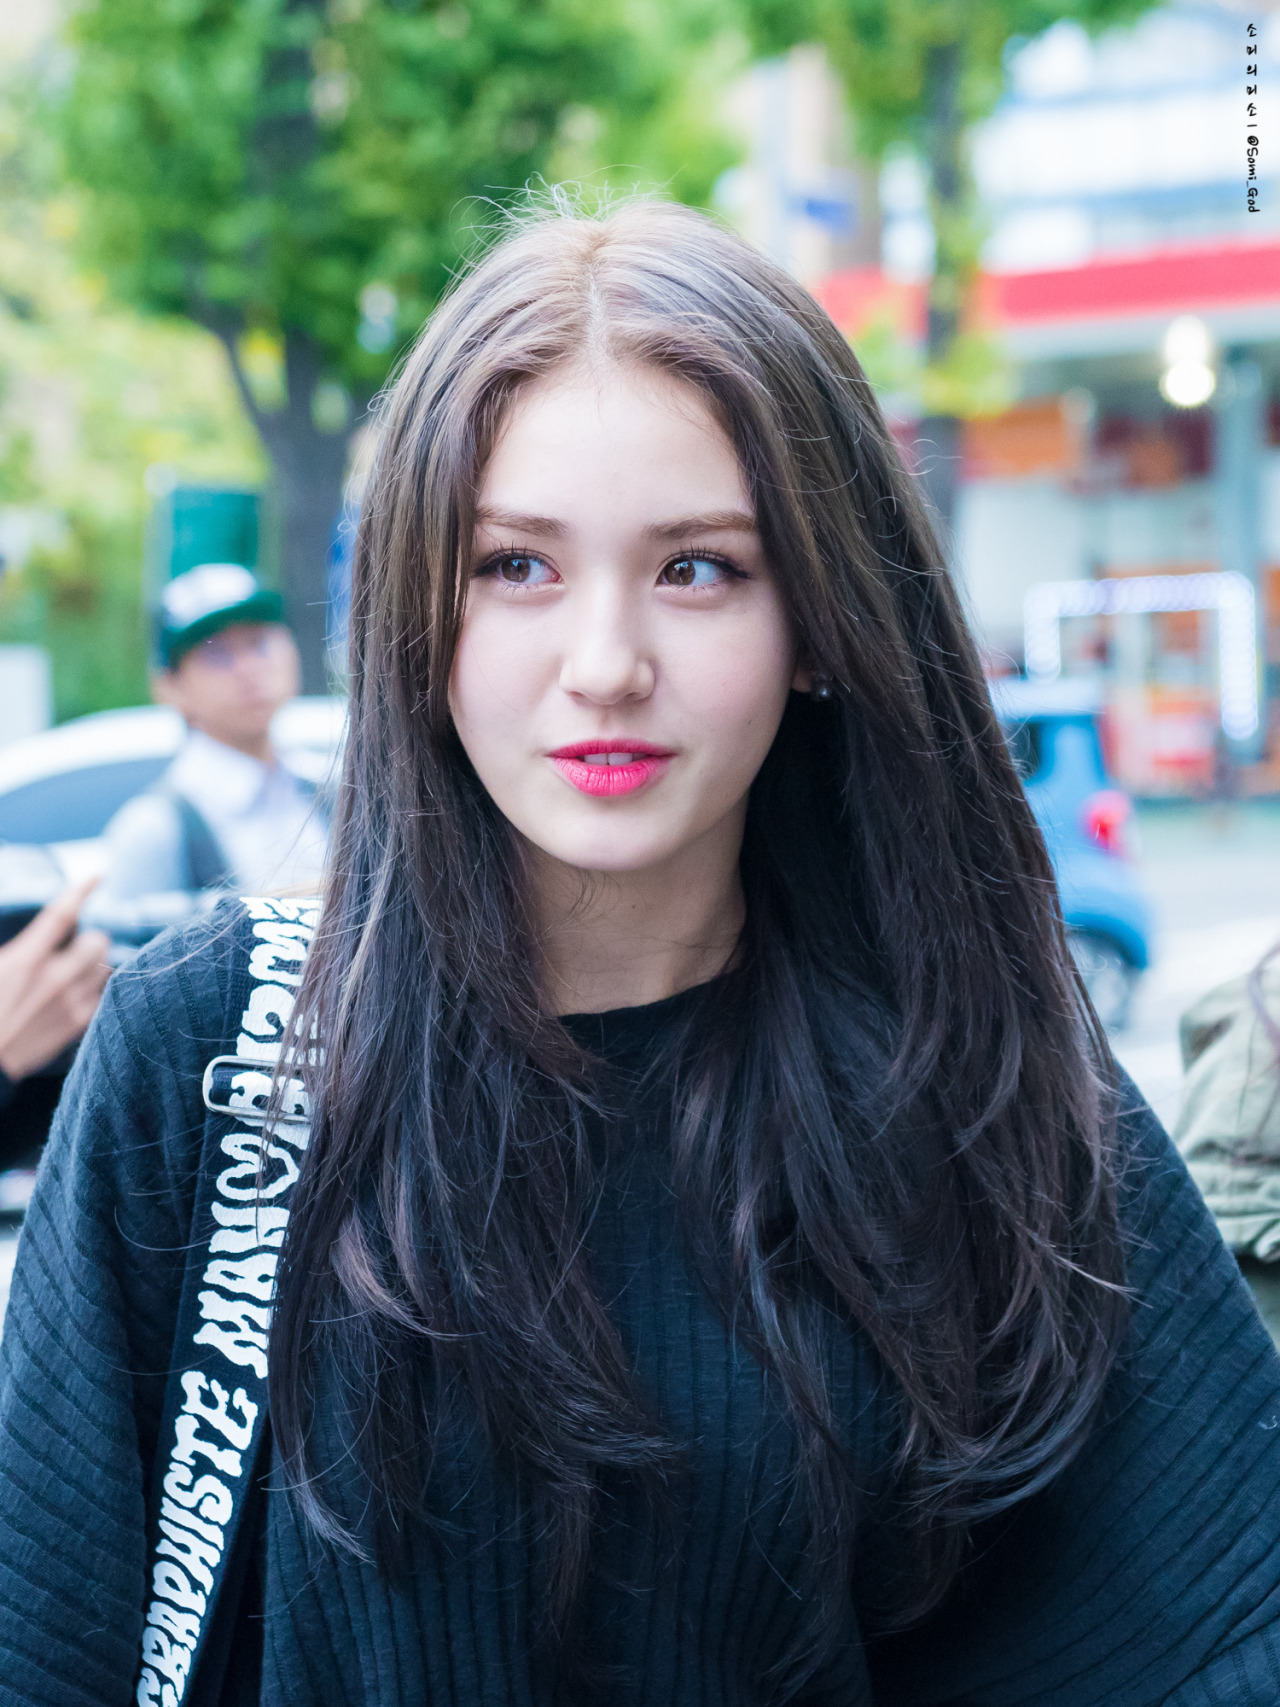 Jeon Somi Android Iphone Wallpaper 92067 Asiachan Kpop